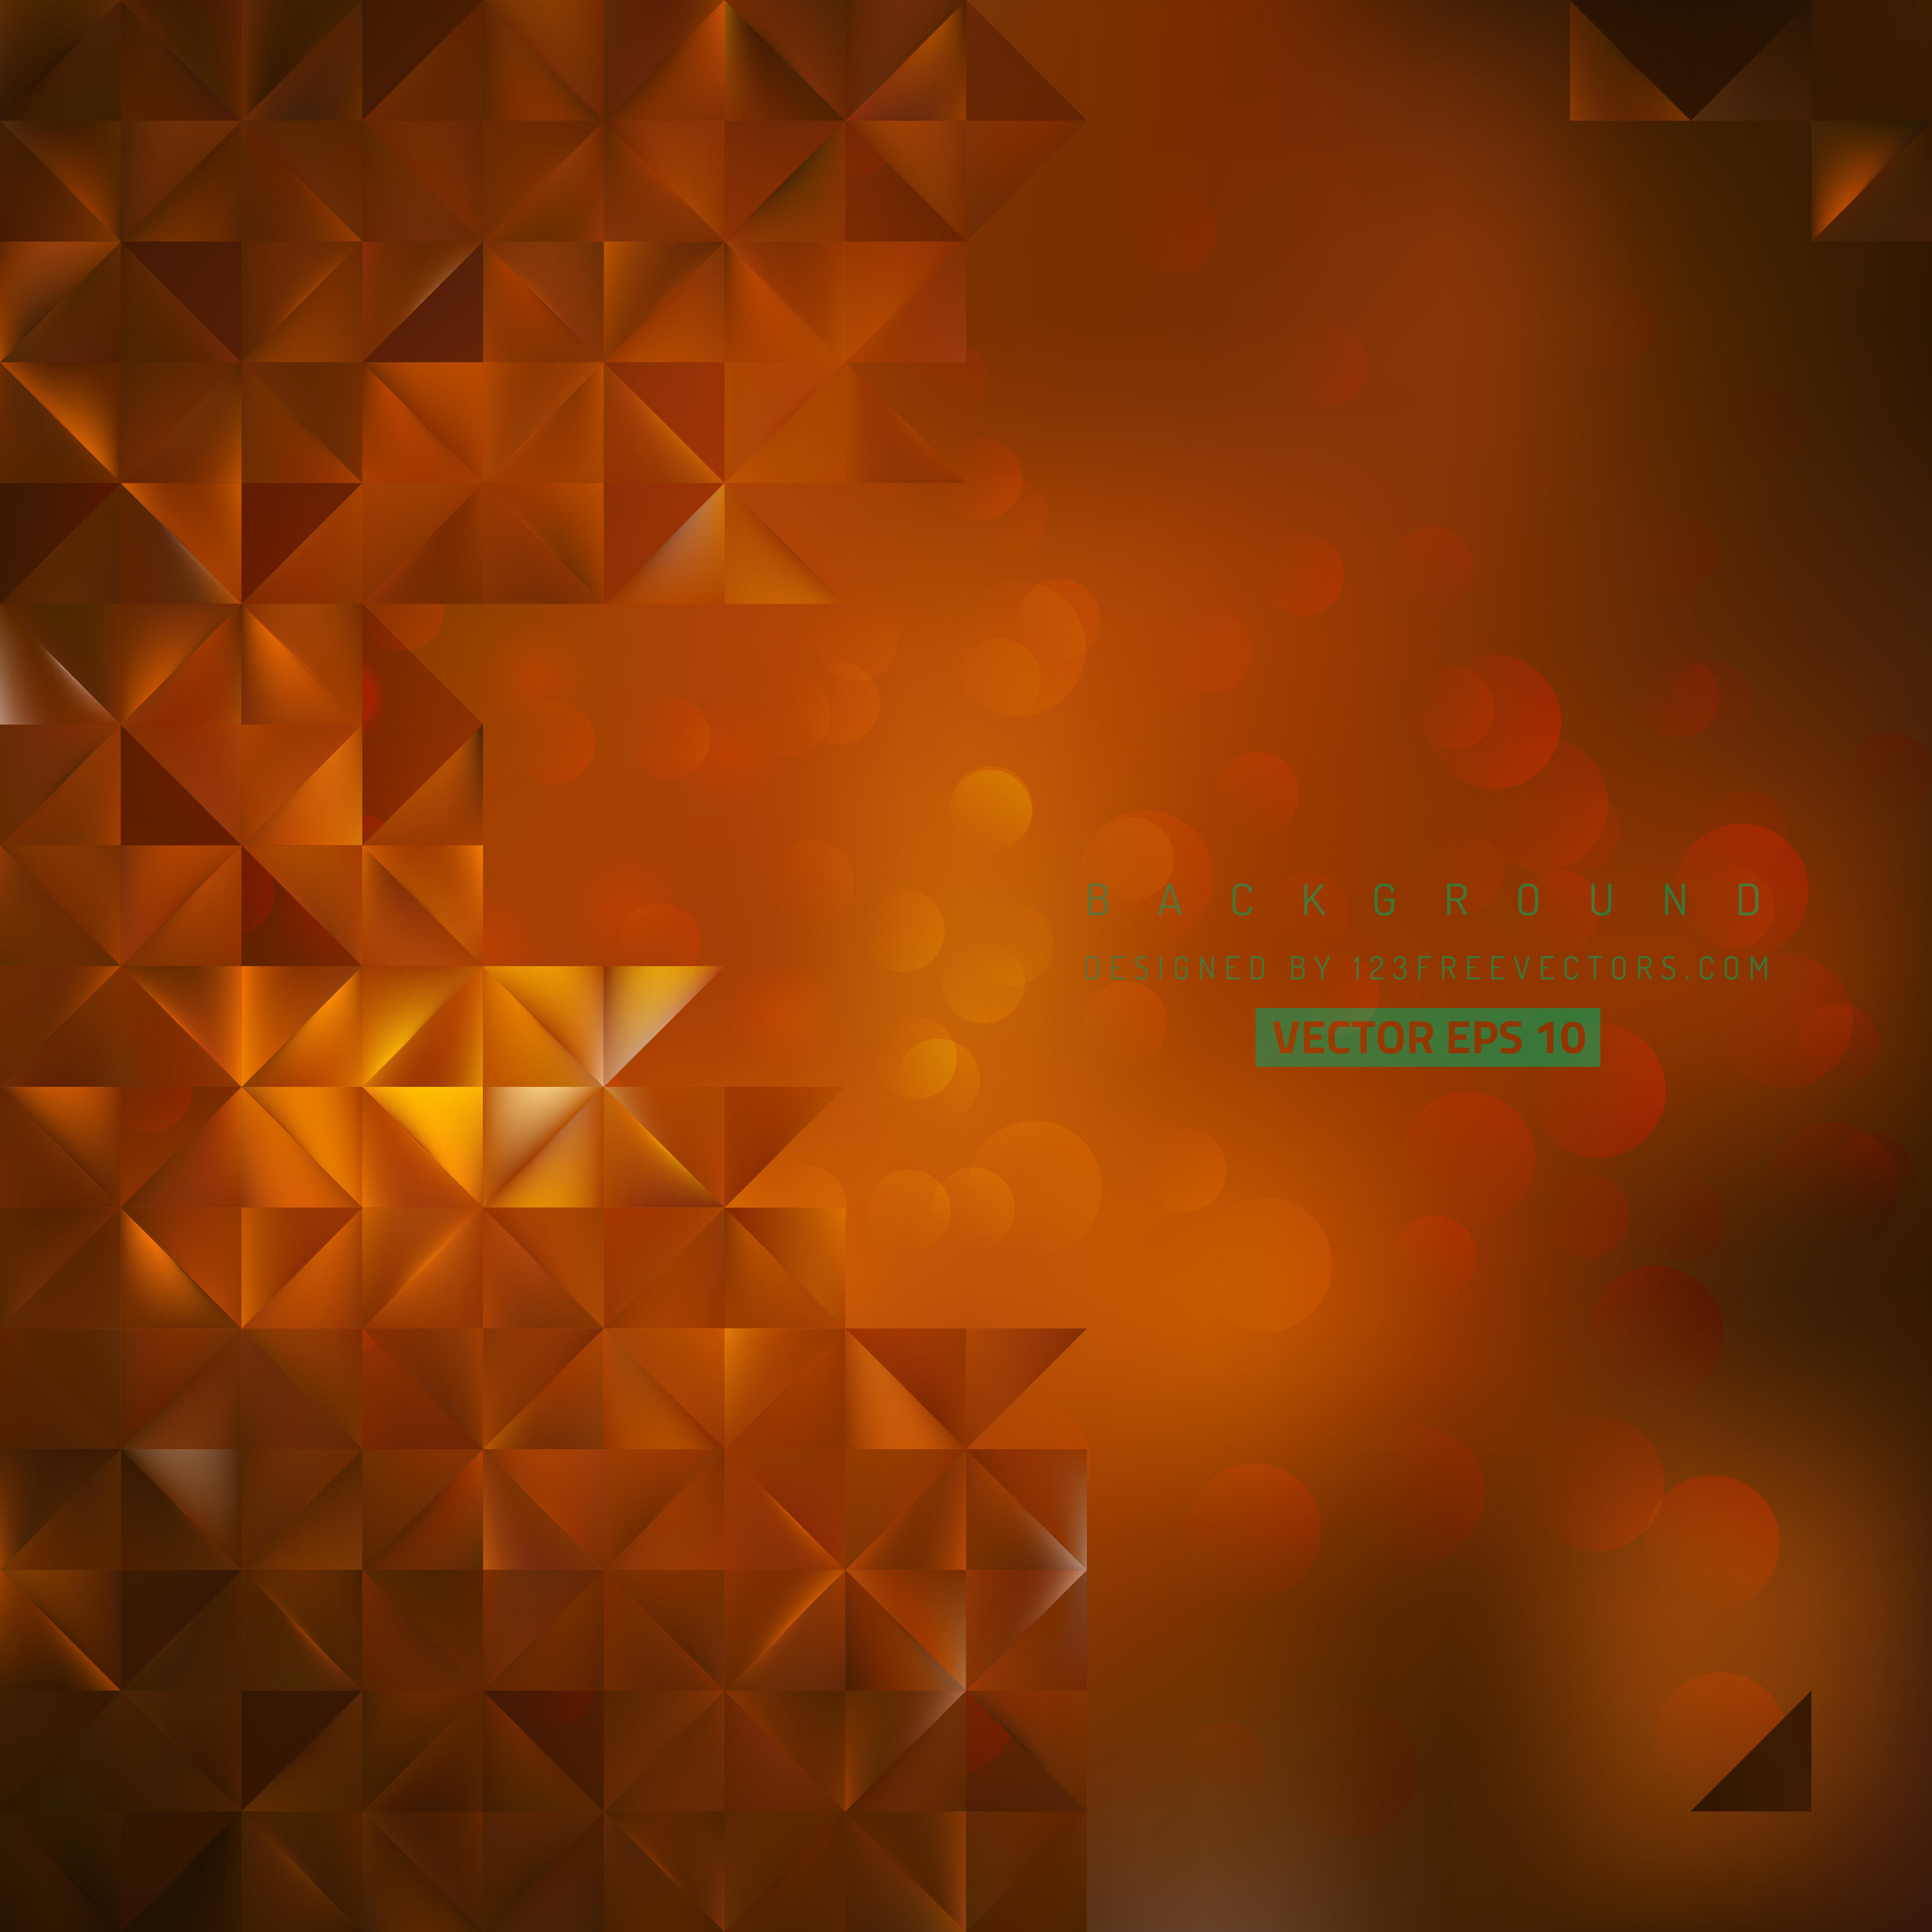 Abstract Dark Orange Background Clip art.